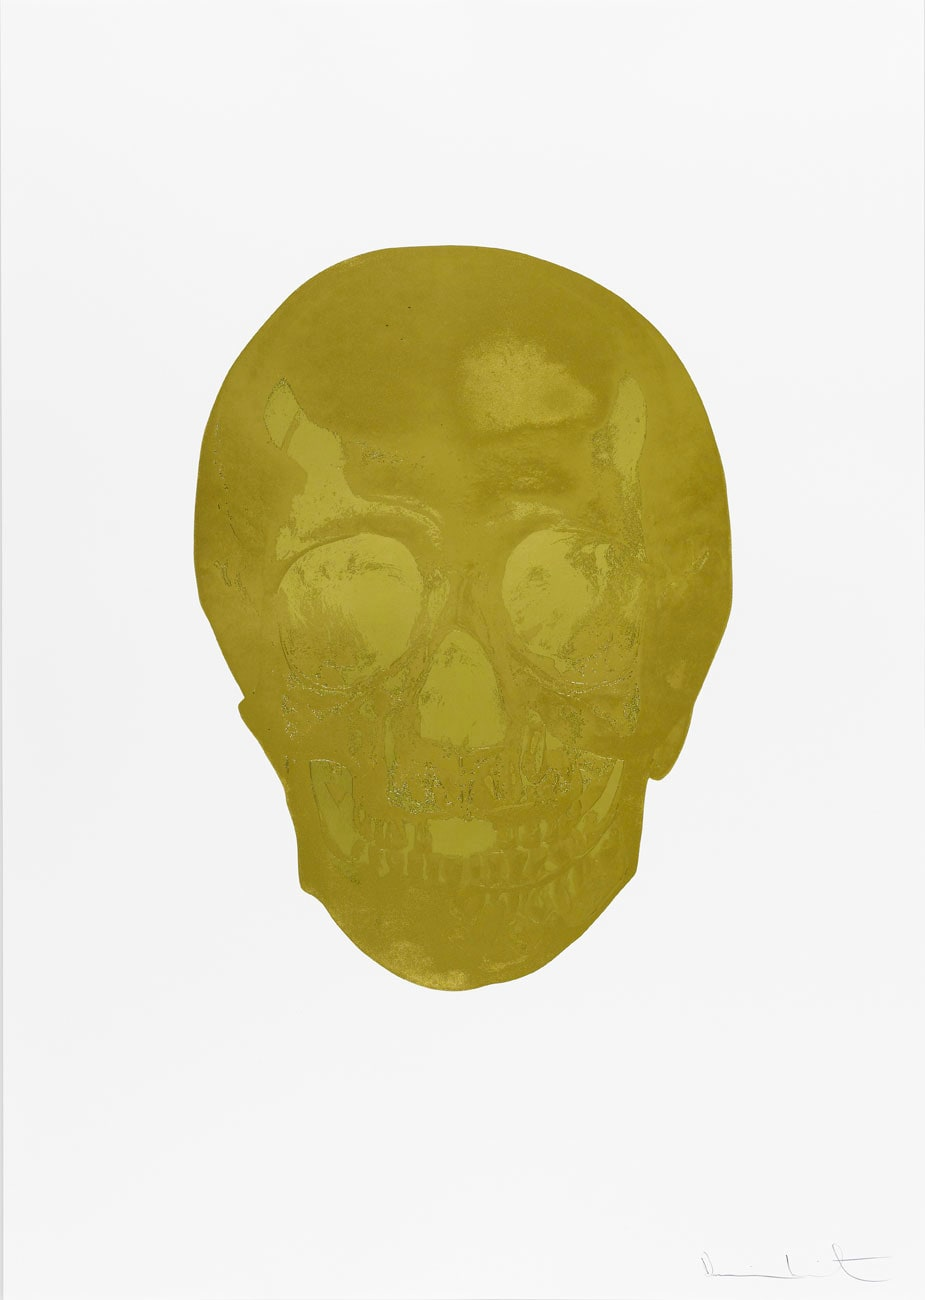 Damien Hirst Death Or Glory Hazy Gold/Sunset Gold Glorious Skull, 2011 2 colour foil block on 300gsm Arches 88 archival paper. Signed and numbered. Published by Paul Stolper and Other Criteria. White aluminium powder coated frame. 72 x 51 cm; Framed 76.8 x 55.8 cm OC8362 Edition of 2